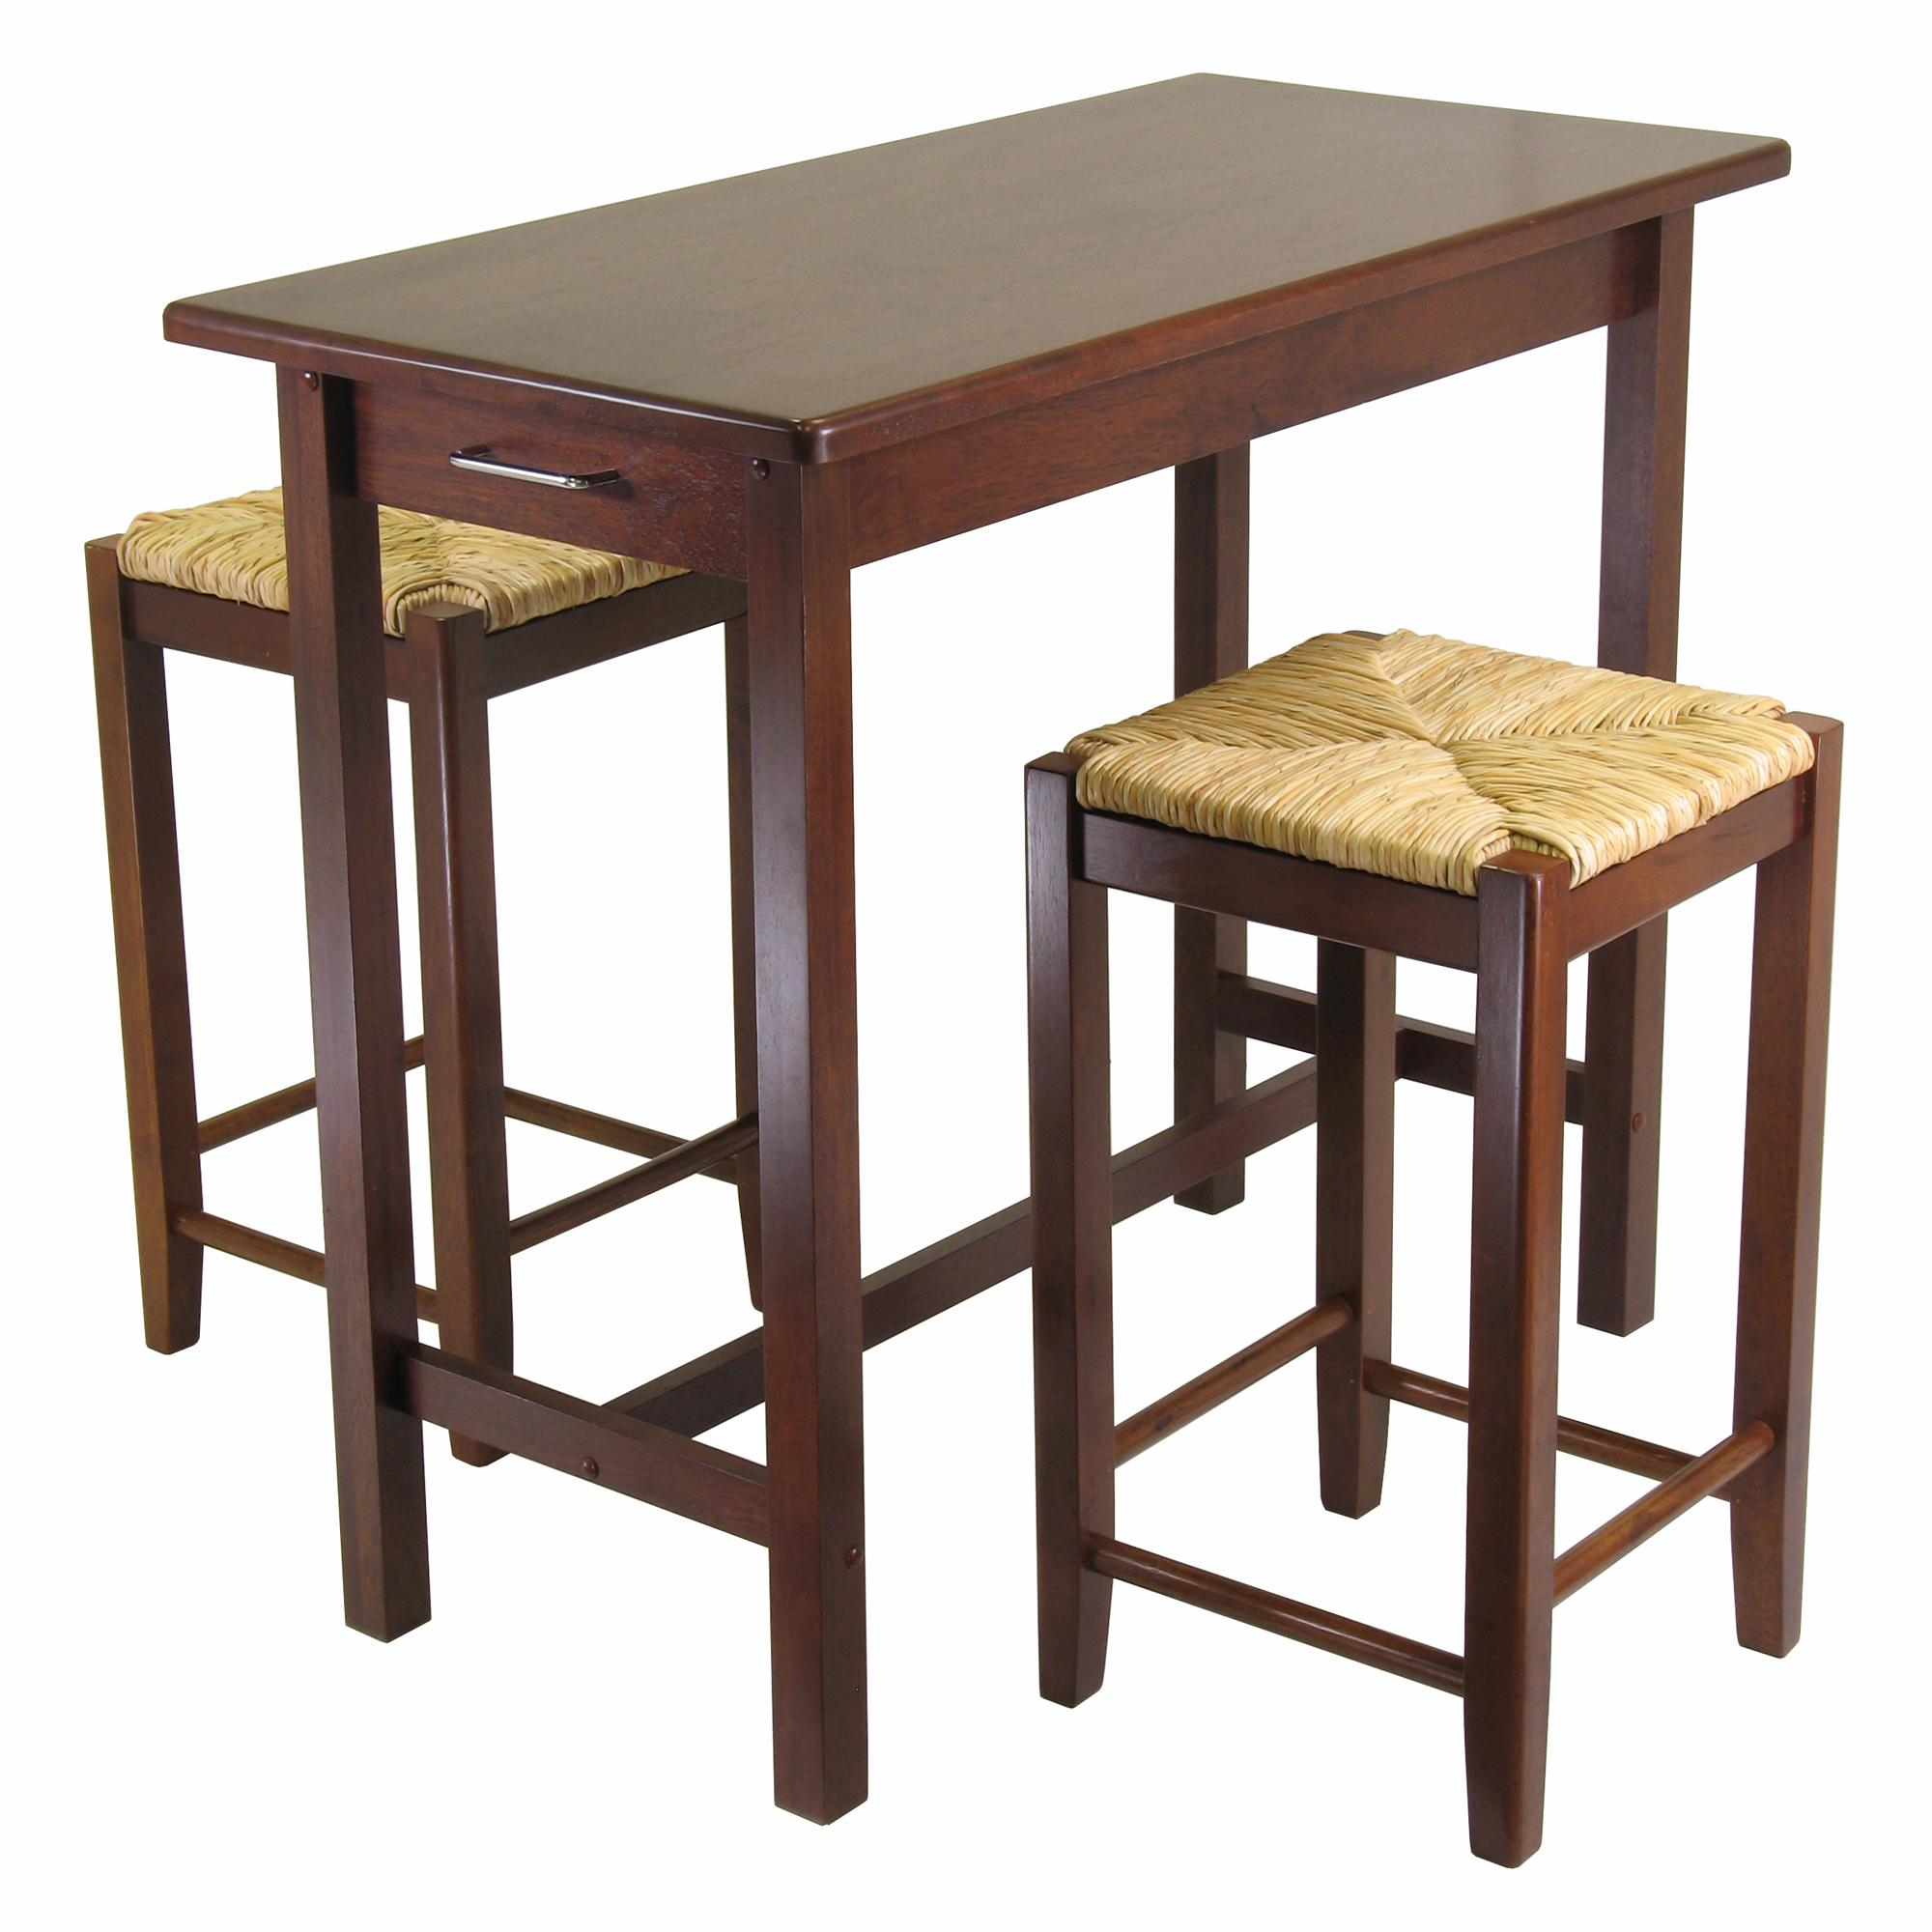 Winsome Kitchen Island Table With 2 Rush Seat Stools 2 Cartons